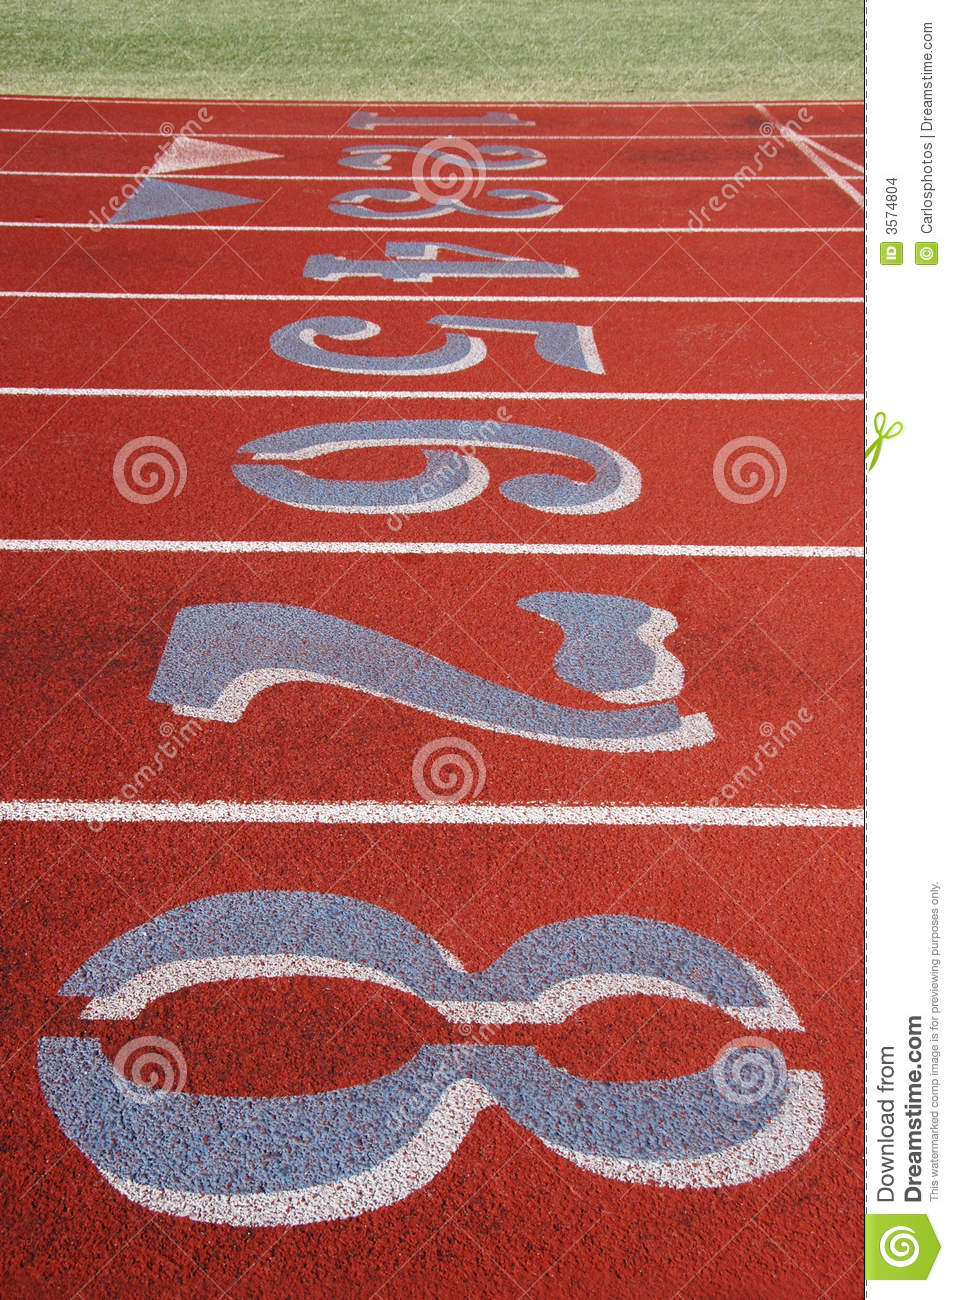 Field track with numbers